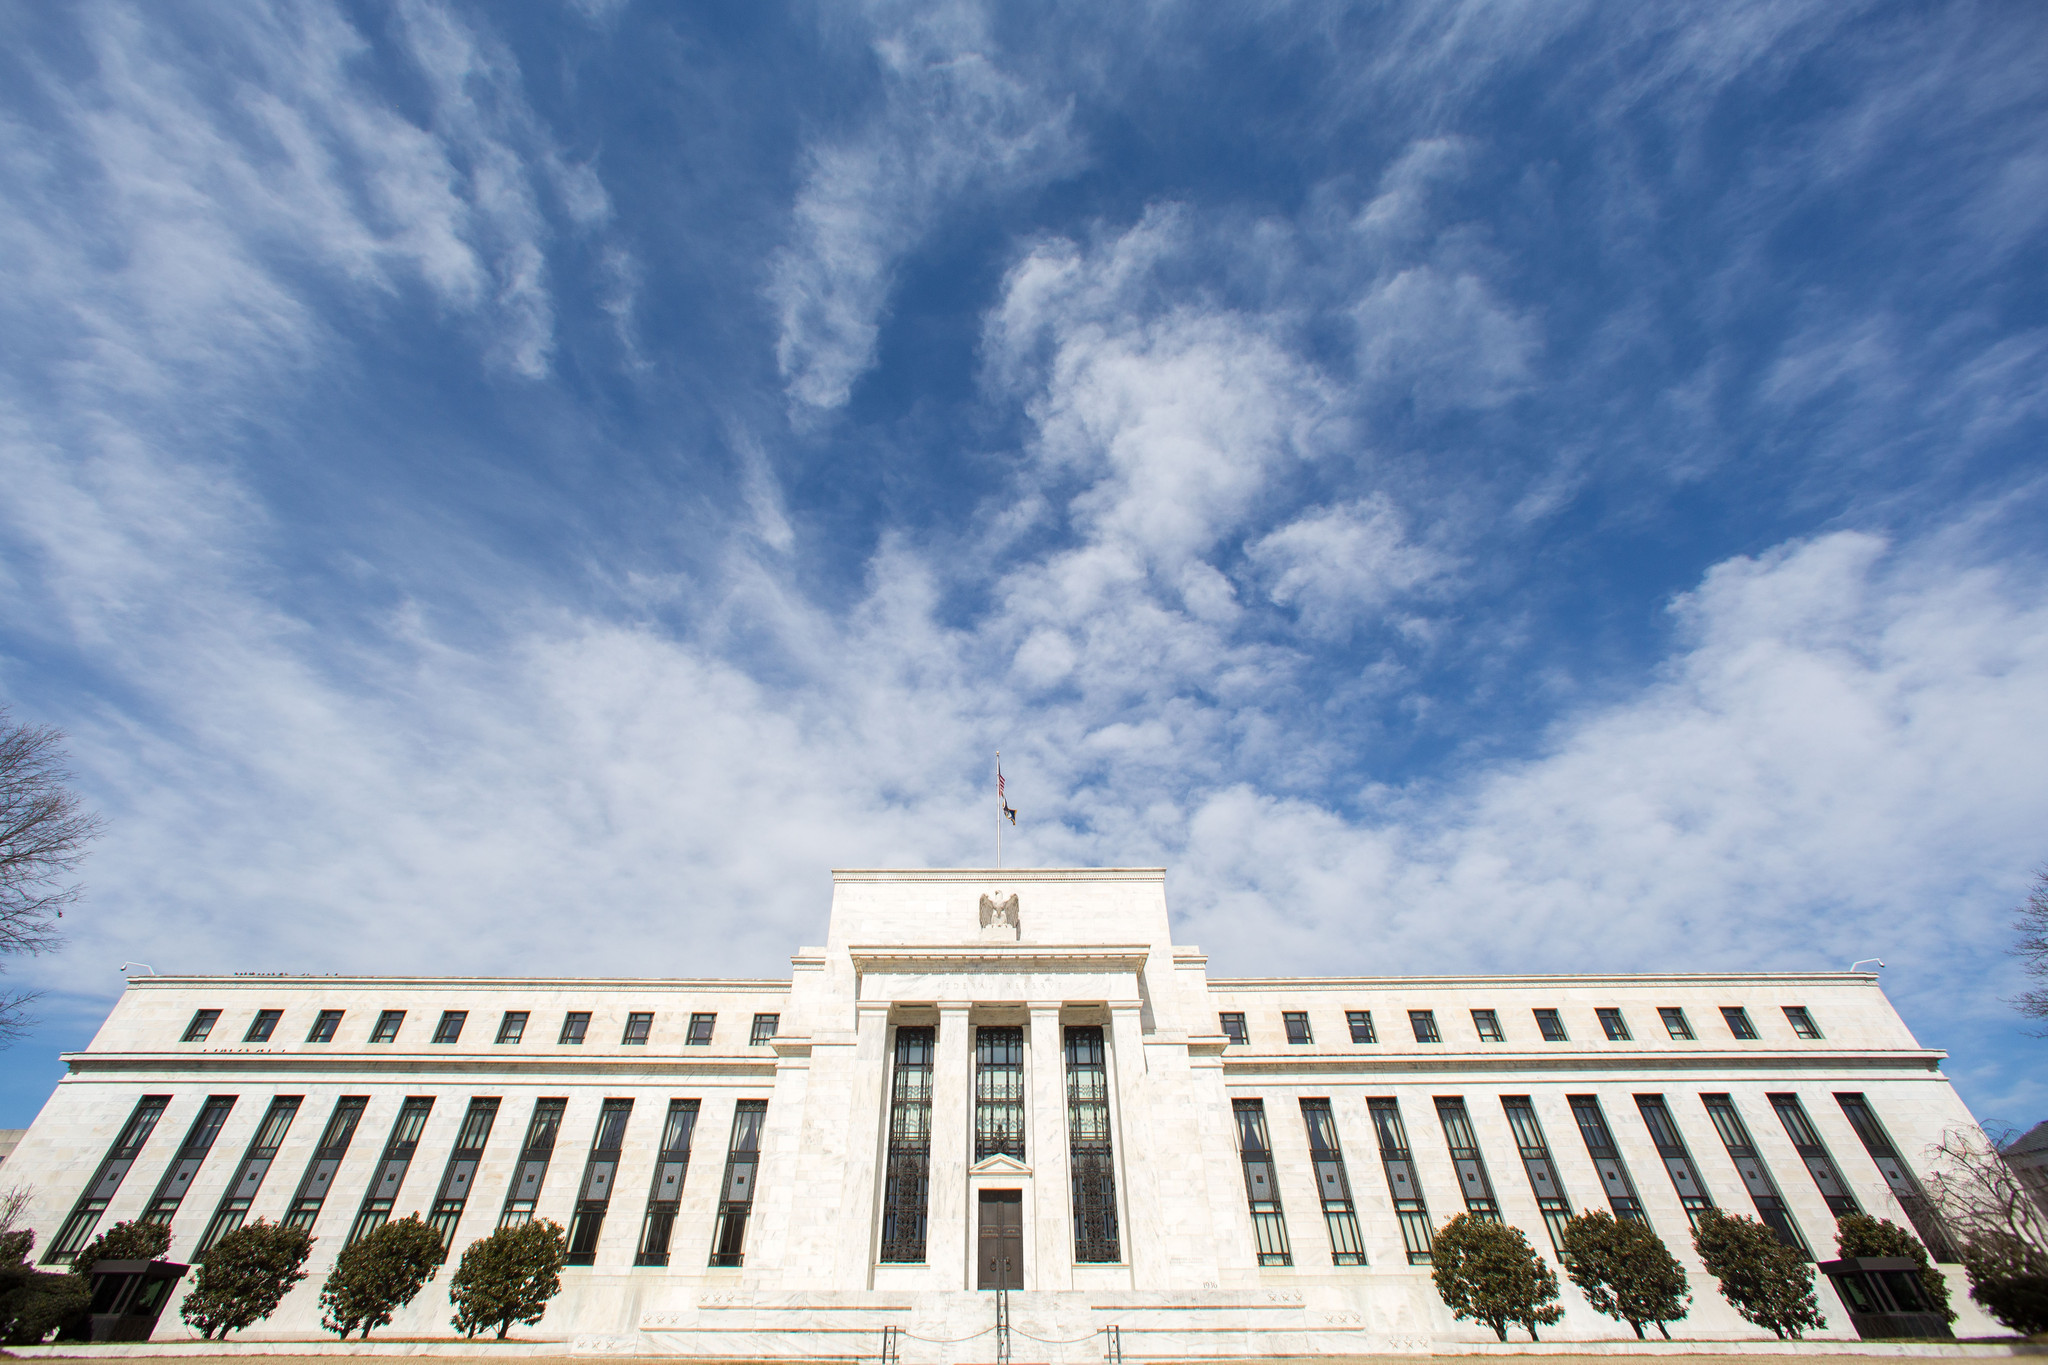 Fed's Upcoming Blockchain Study to Address Security • Live Bitcoin News